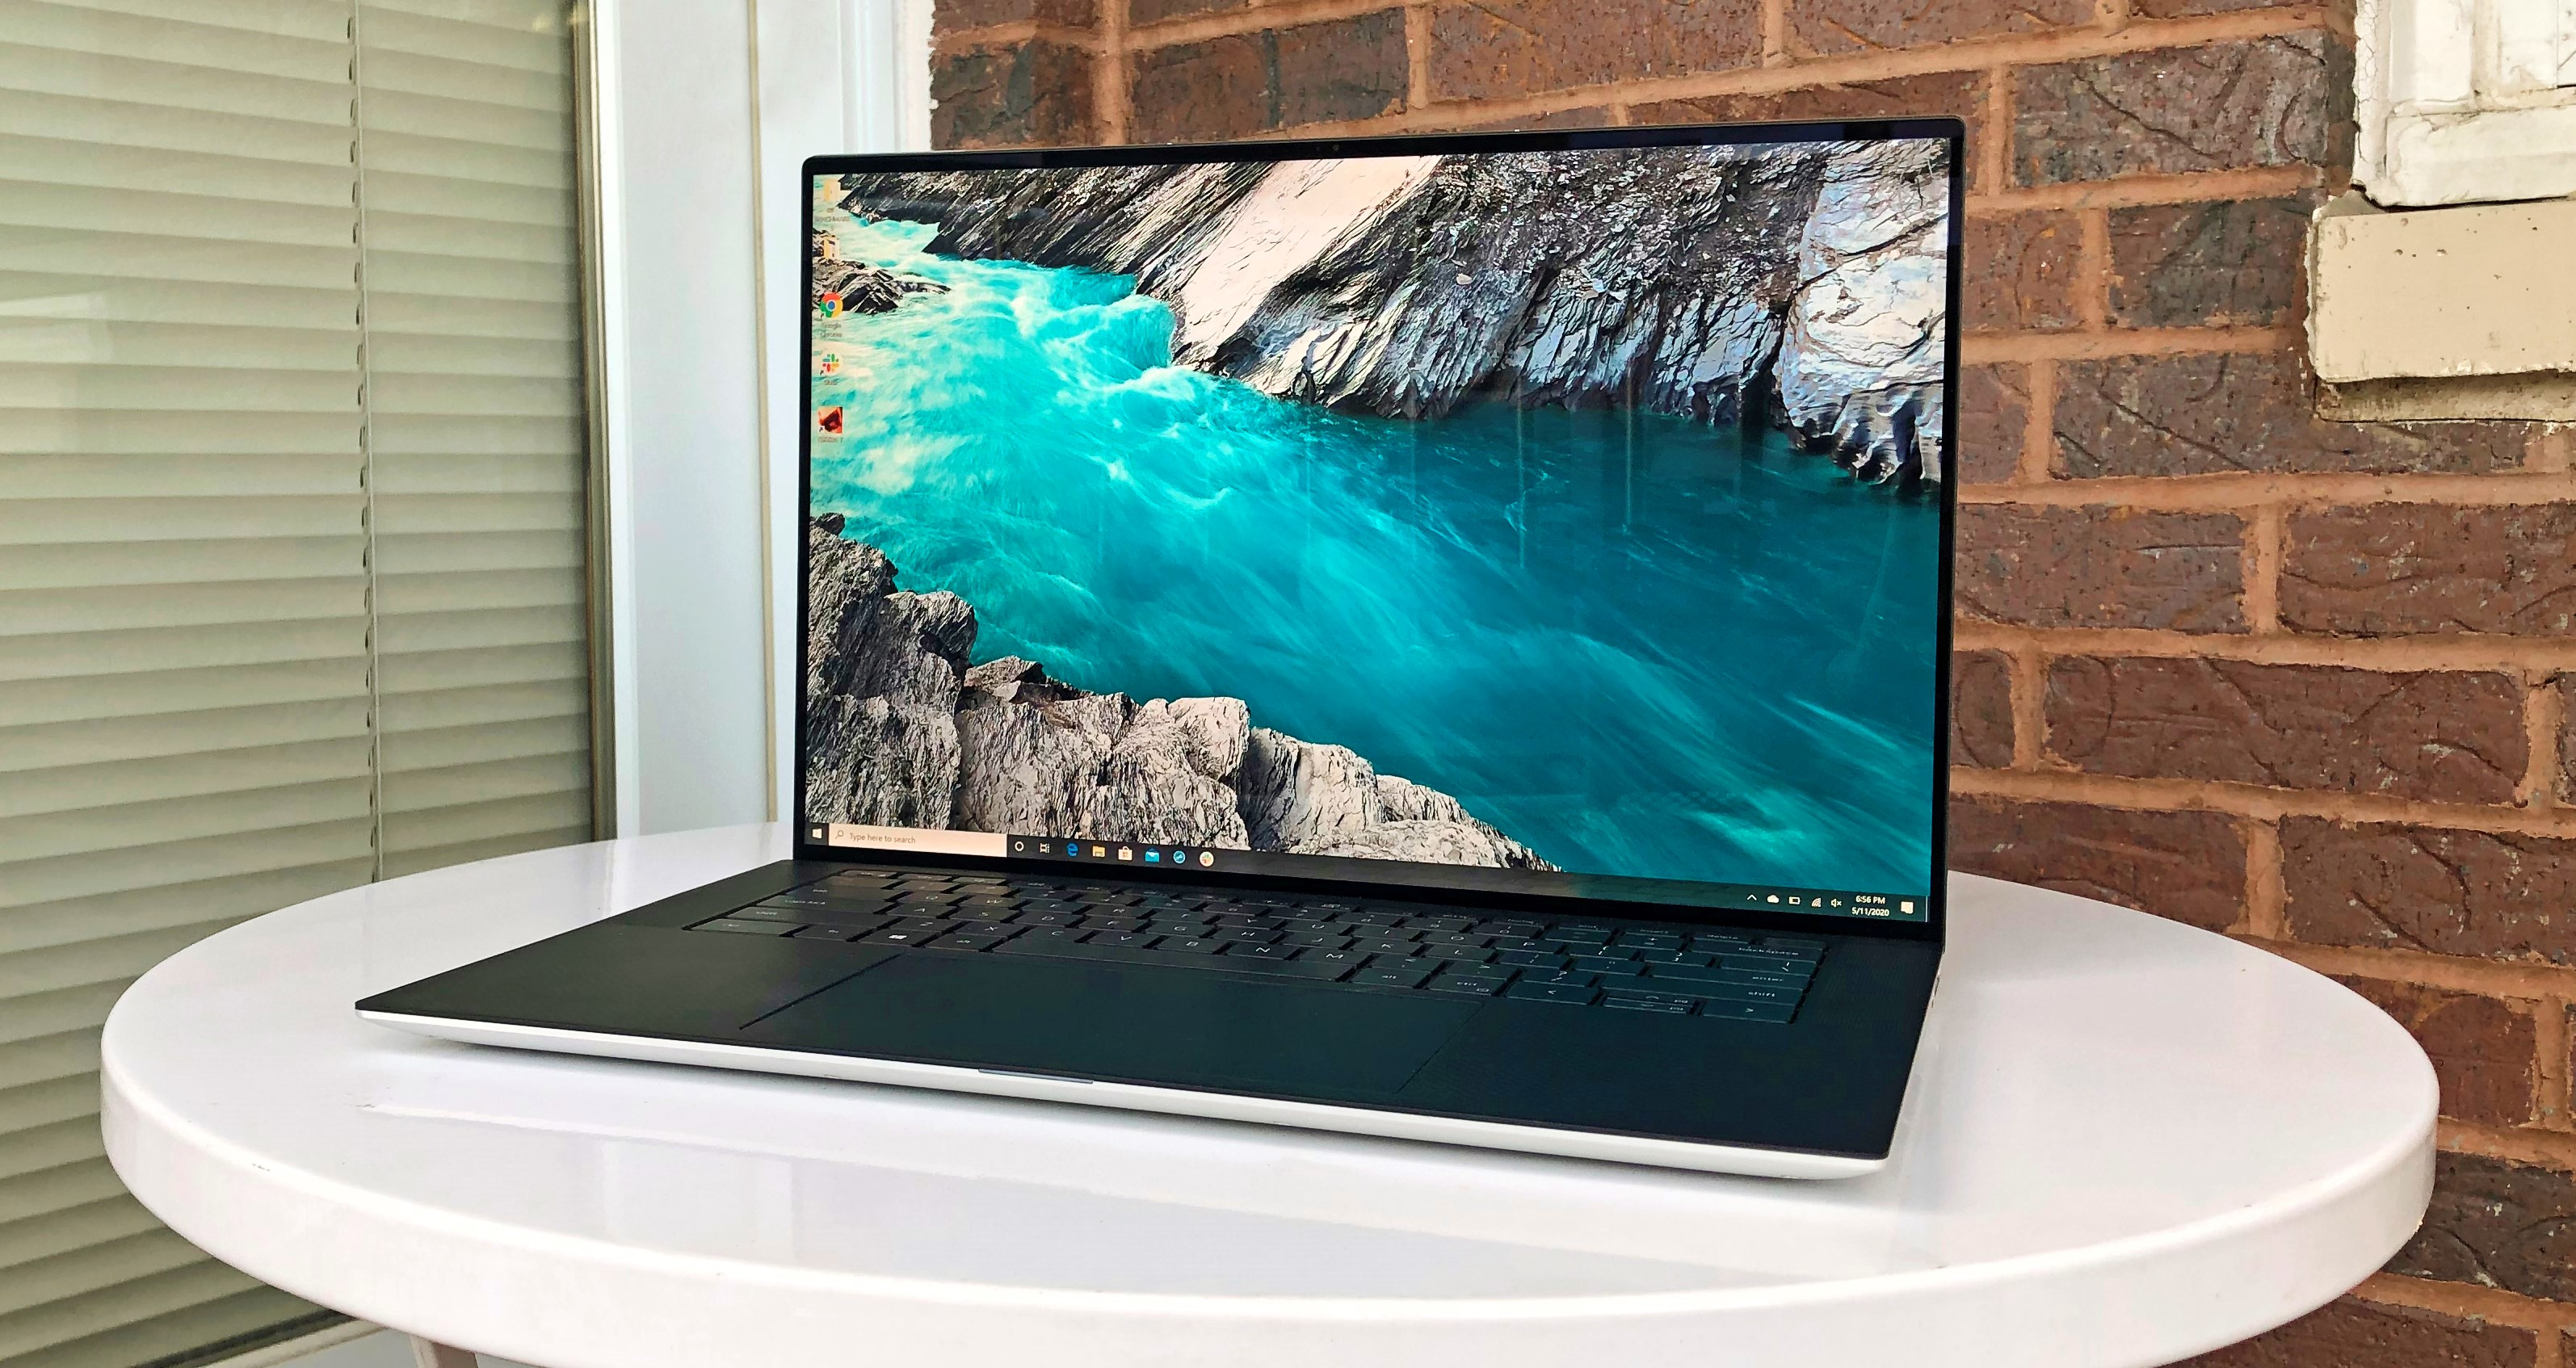 Best laptops for engineering students: Dell XPS 15